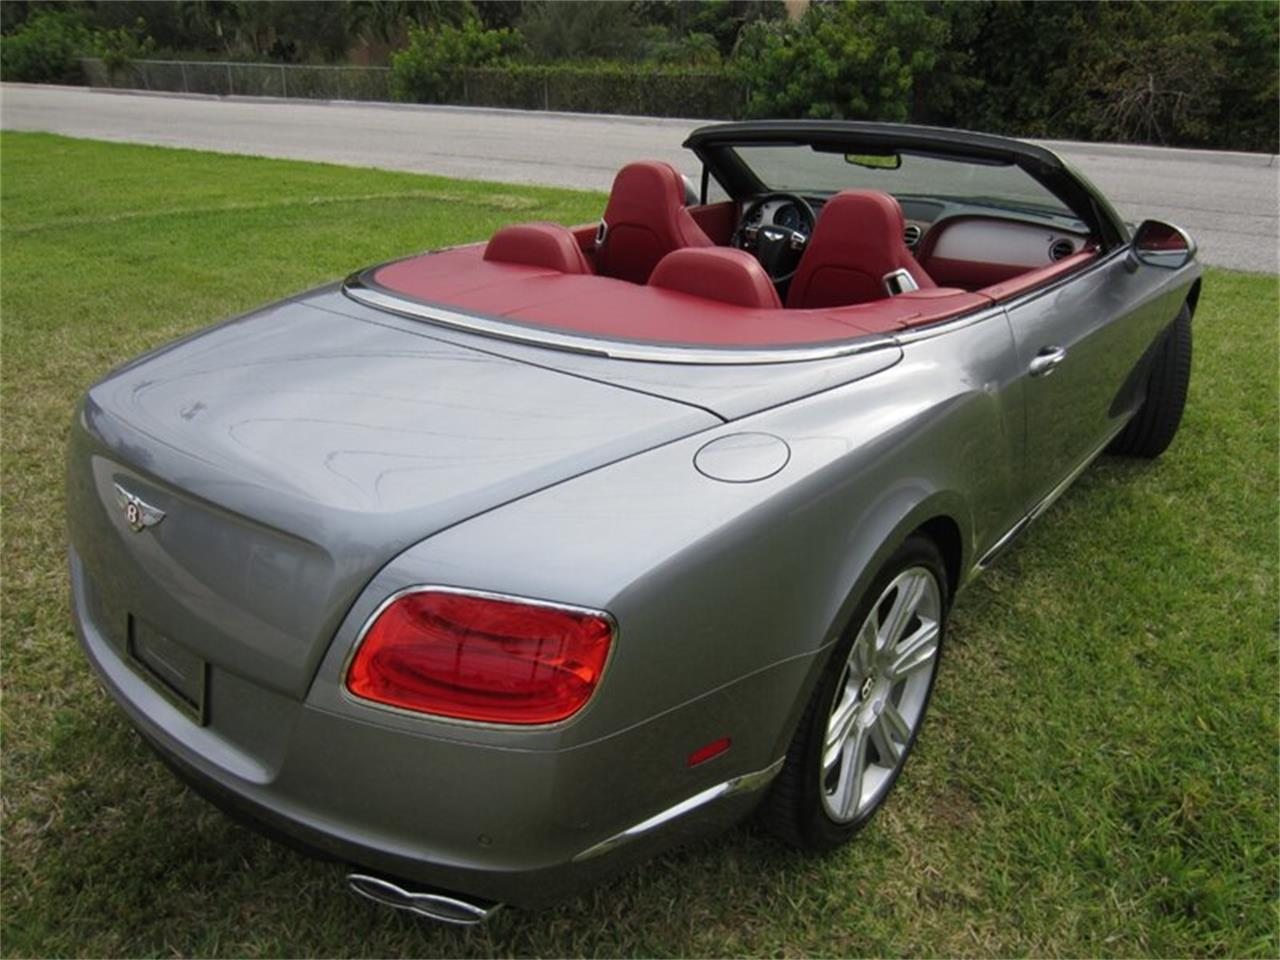 2013 Bentley Continental GTC V8 for sale in Delray Beach, FL – photo 3